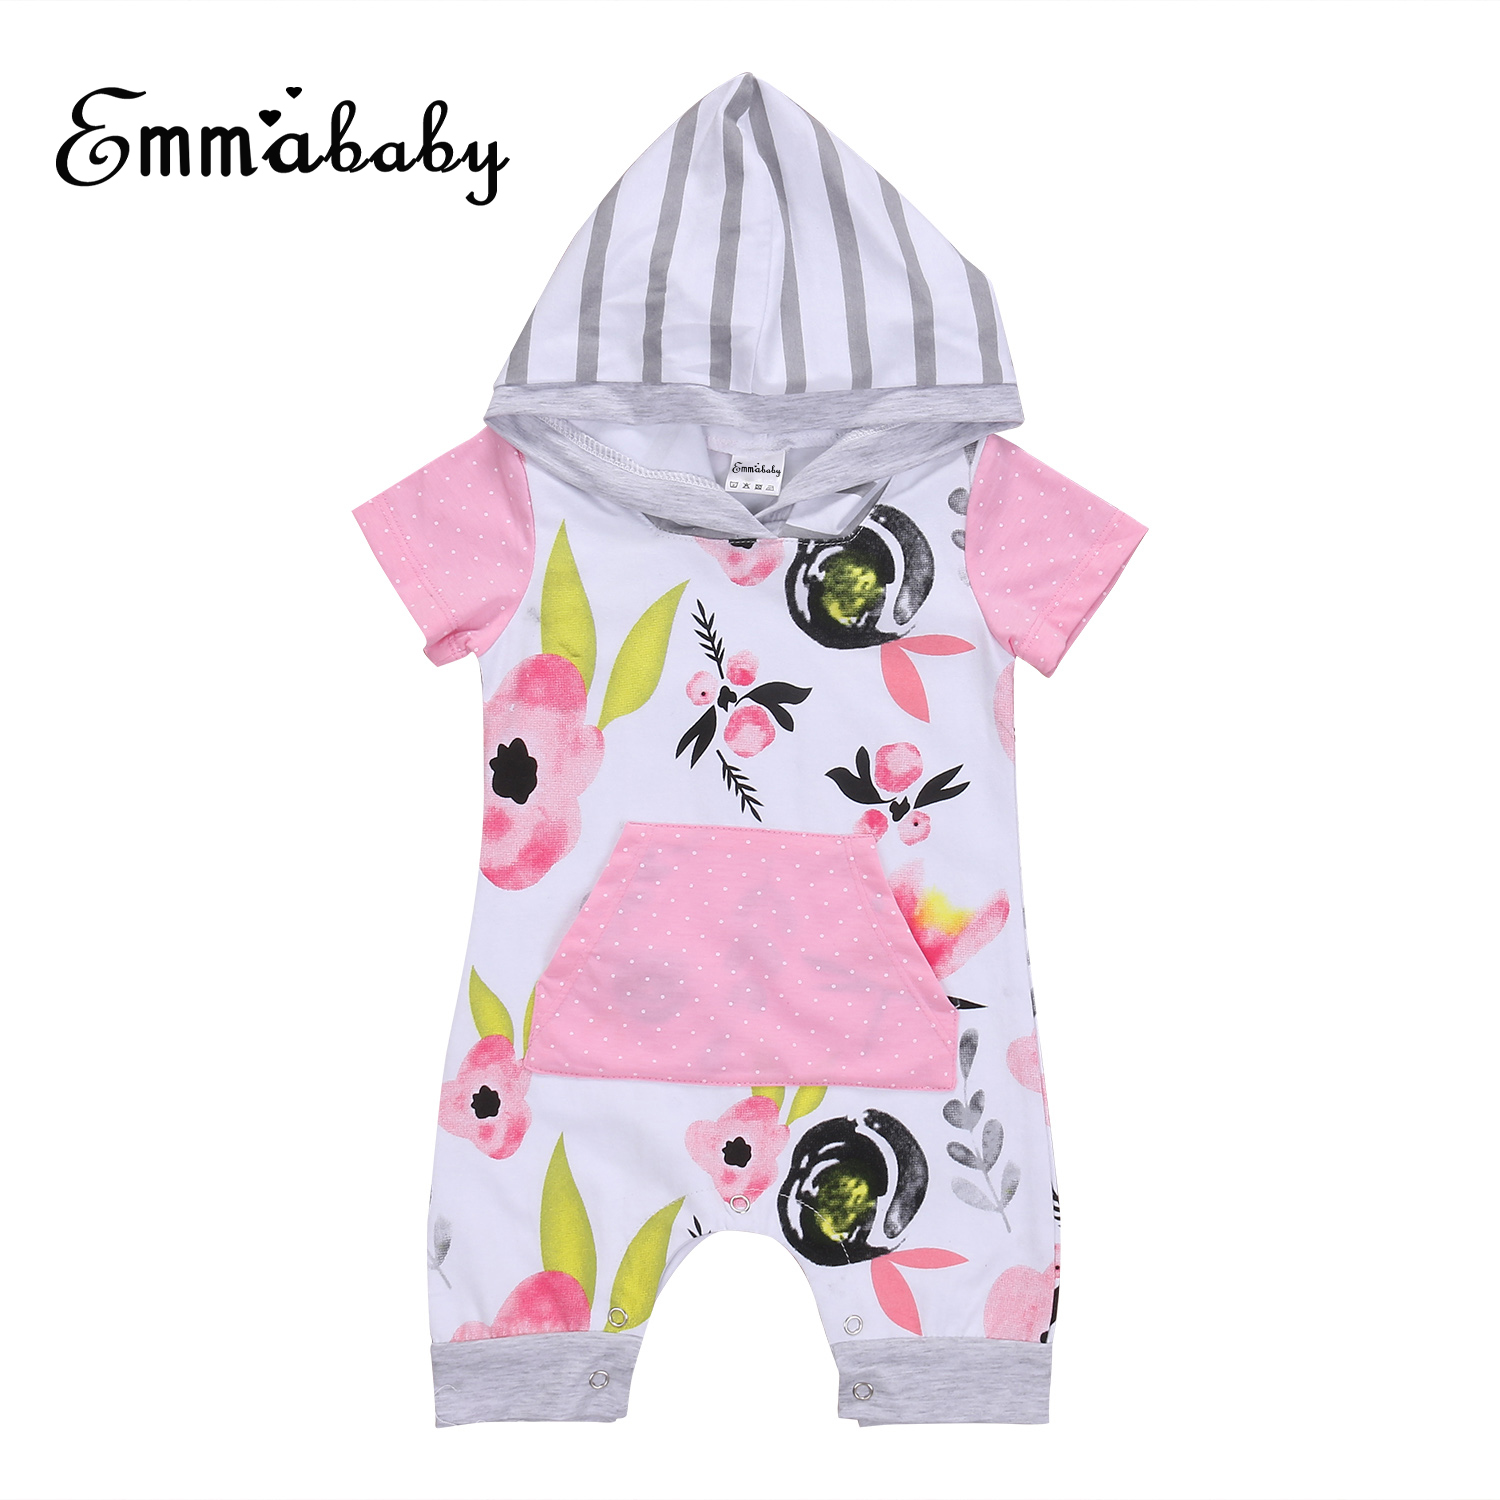 Summer new cute kid Floral print rompers Newborn Toddler Baby Girl short sleeve Hooded Romper Jumpsuit Playsuit Clothes 0-24M